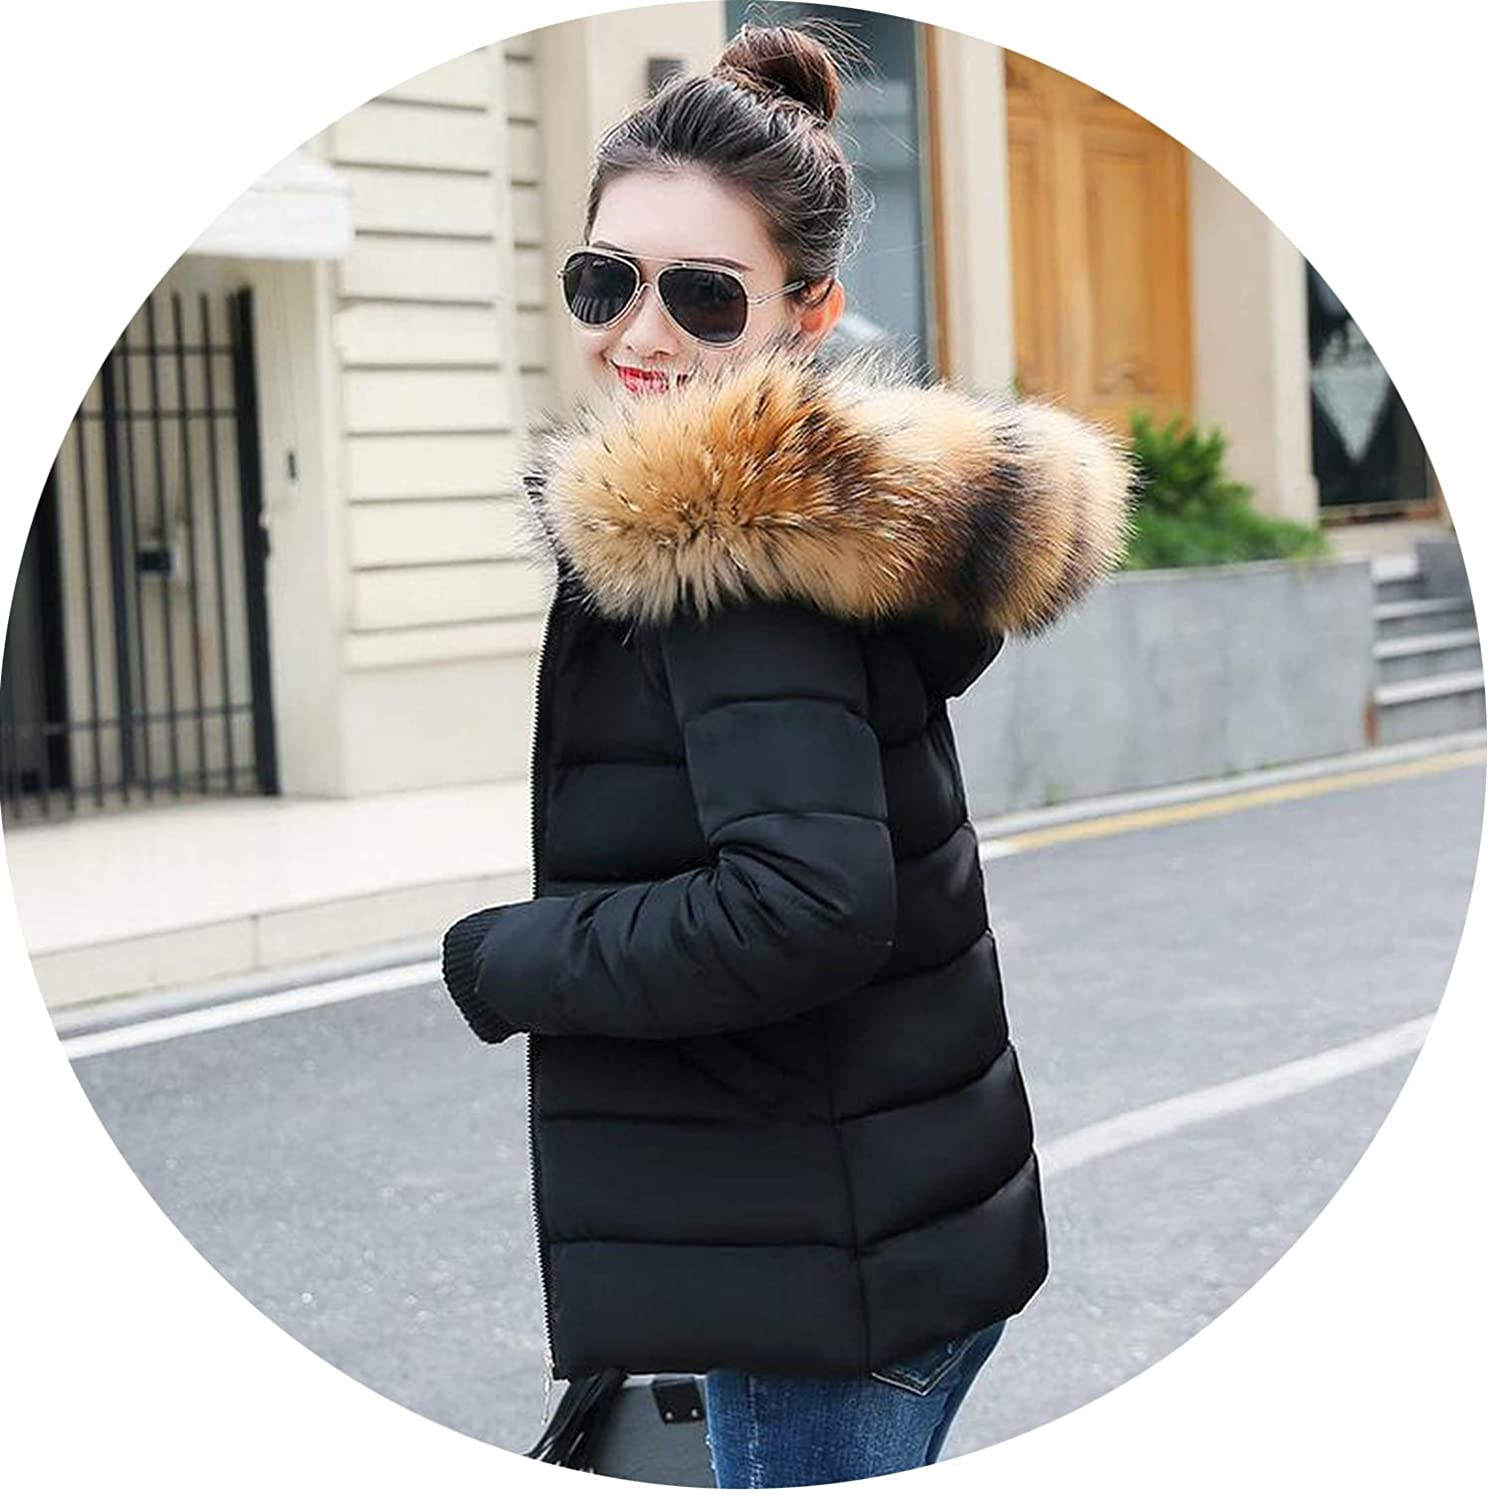 Black 3 Winter Jacket Women Hooded Winter Women's Jacket Thicken Warm Parka Jacket Women's Winter Coat